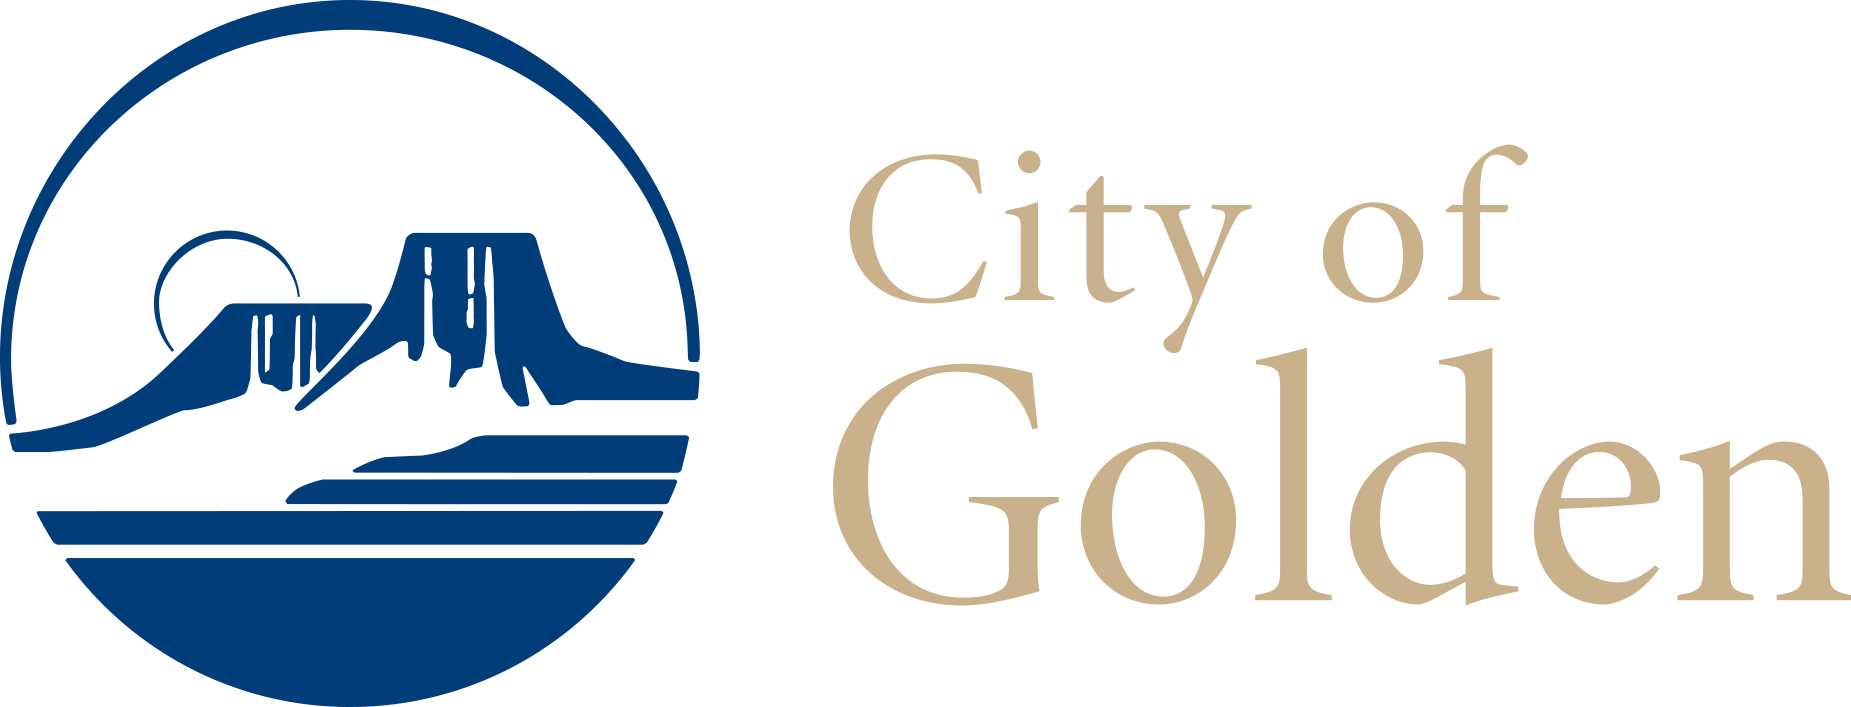 city-of-golden.png